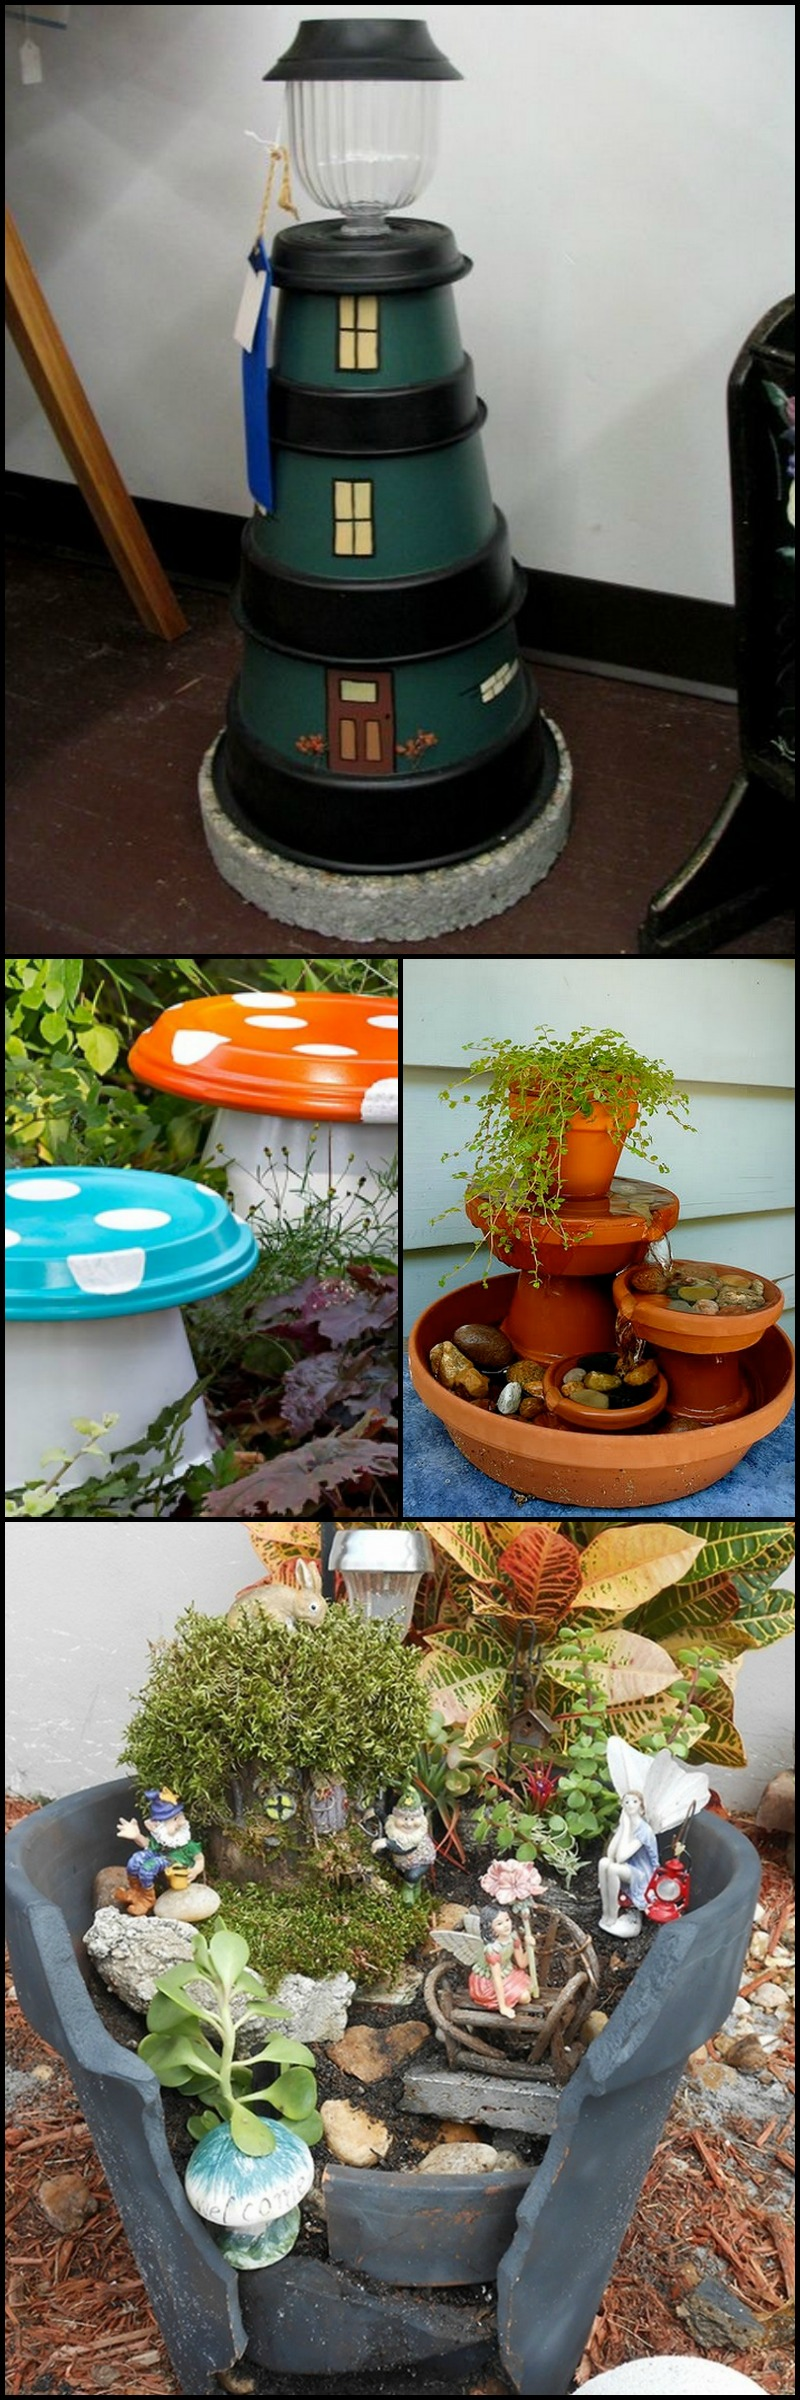 Brighten up your garden with these fun terracotta projects they 39 re a great project to make with for Terracotta gartendekoration